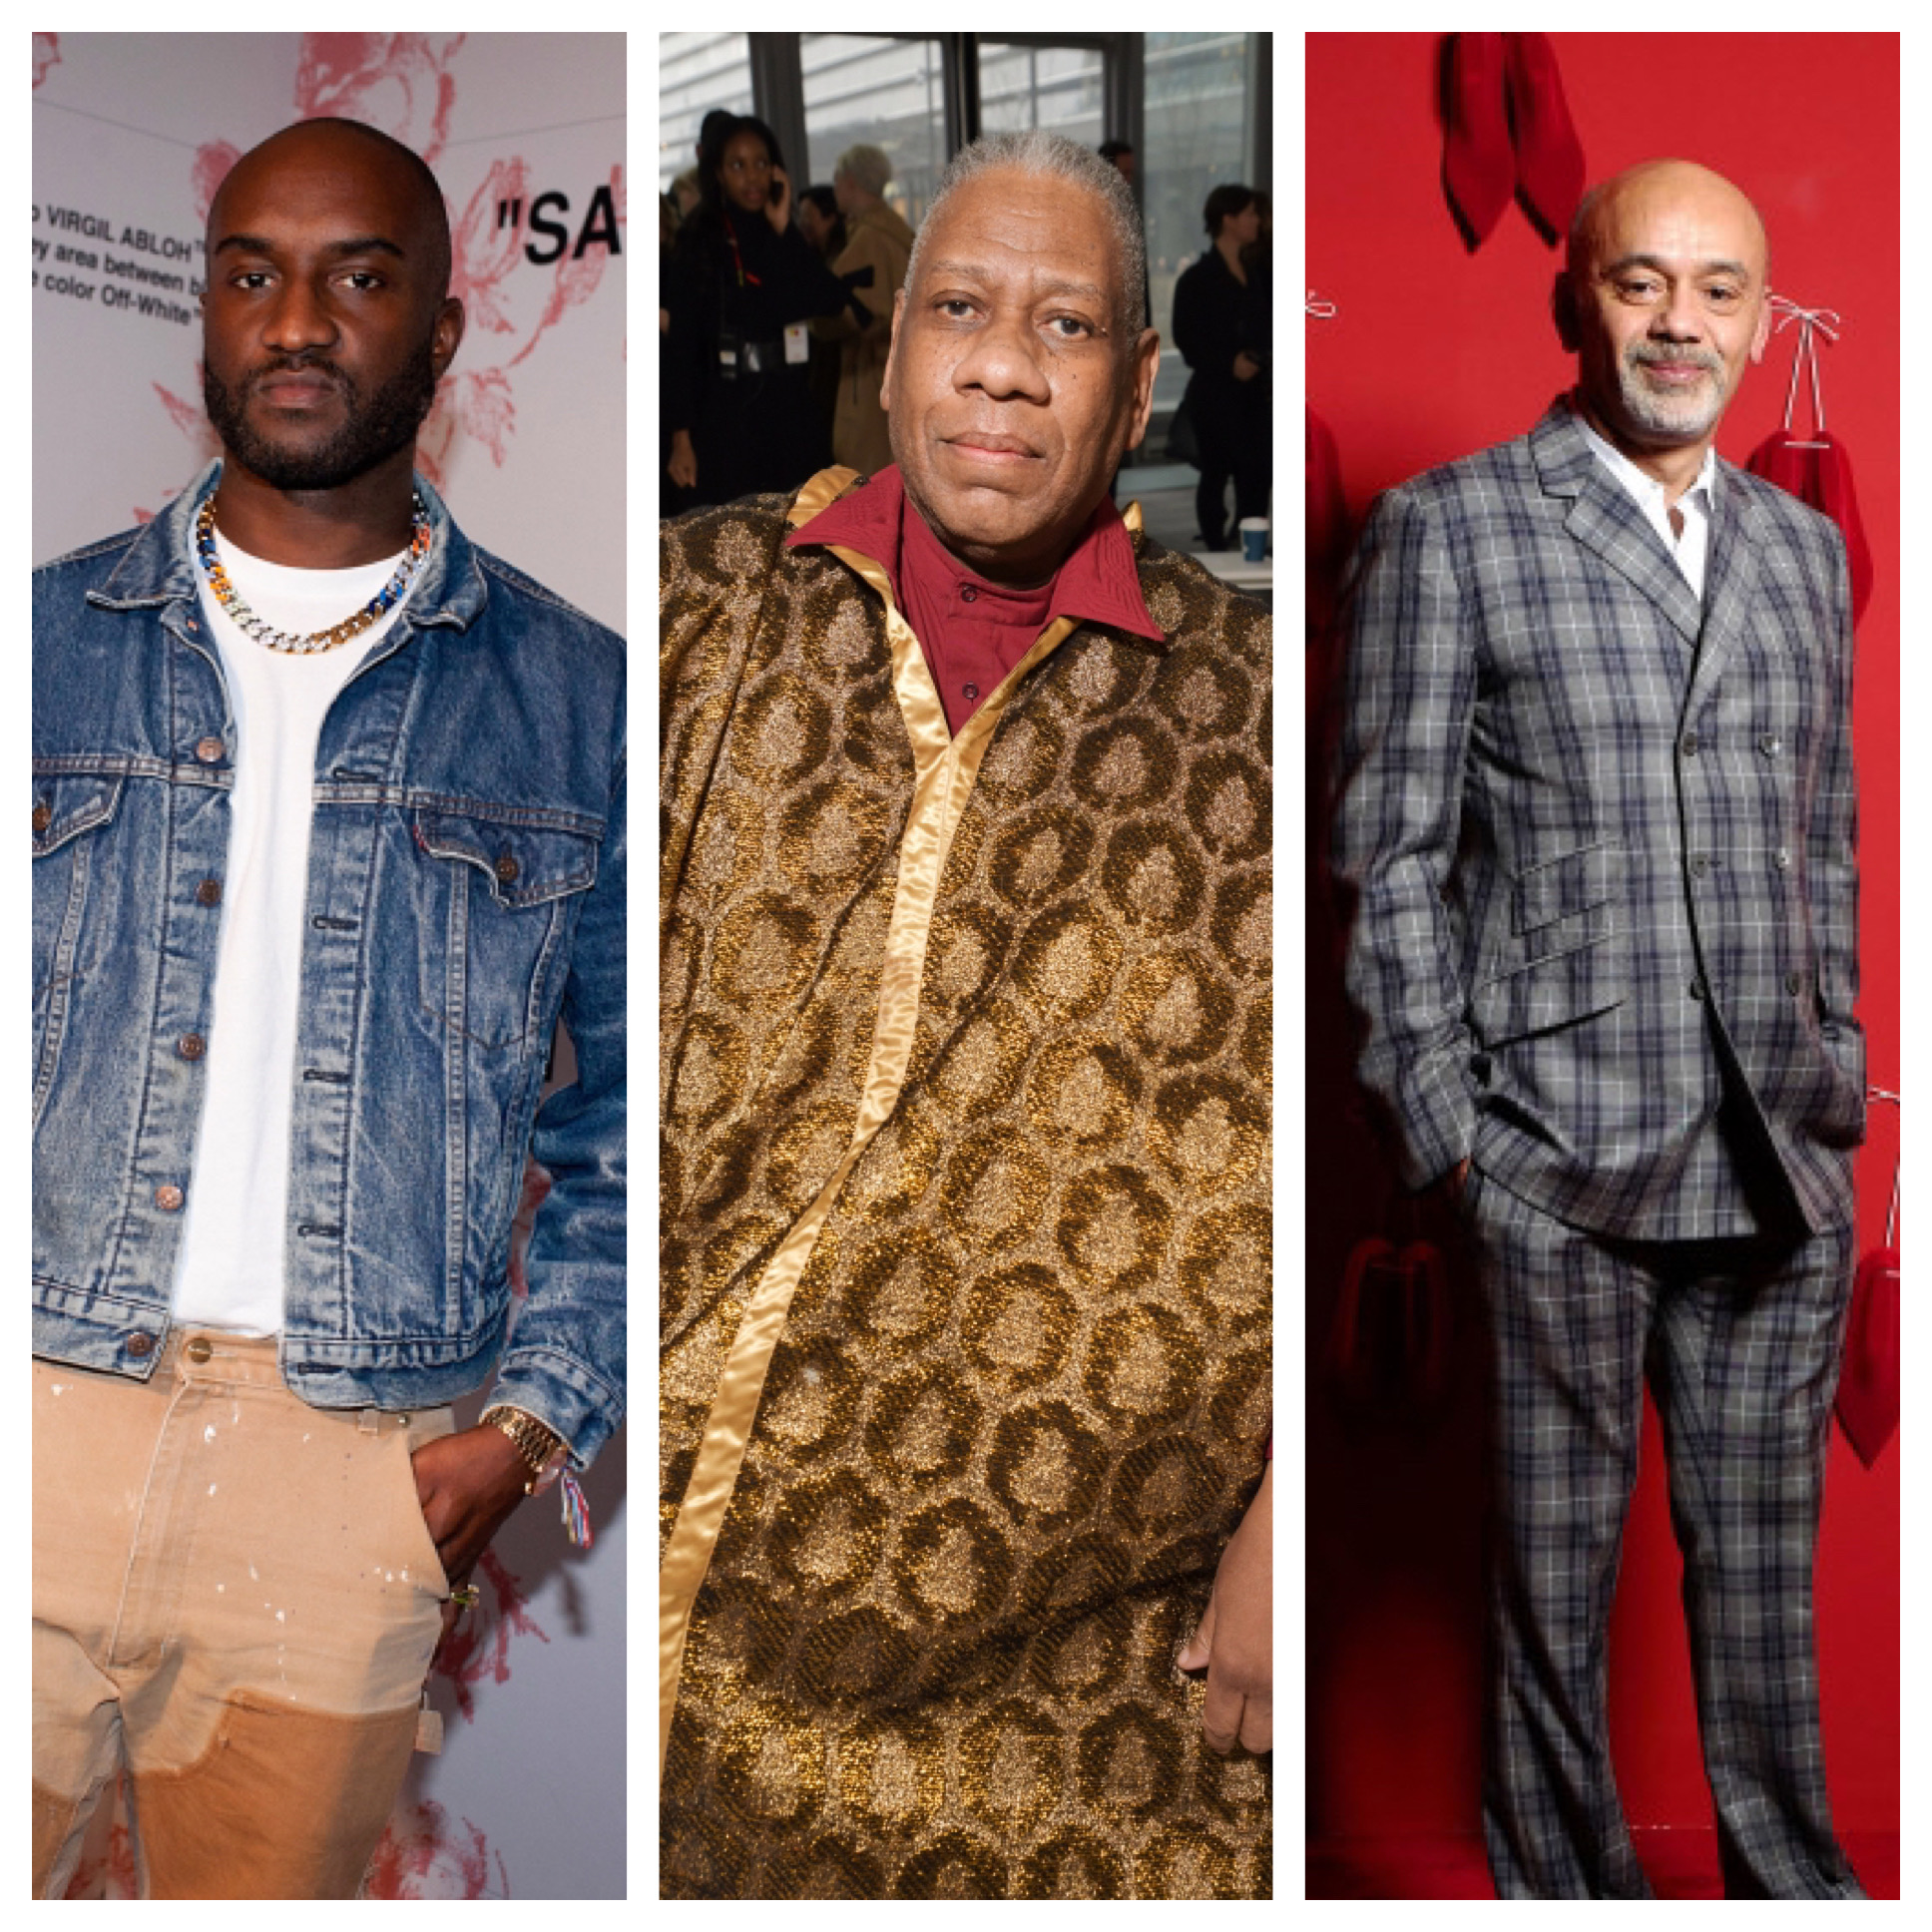 Virgil Abloh, Andre Leon Talley, Christian Louboutin and More to Present at FN Achievement Awards